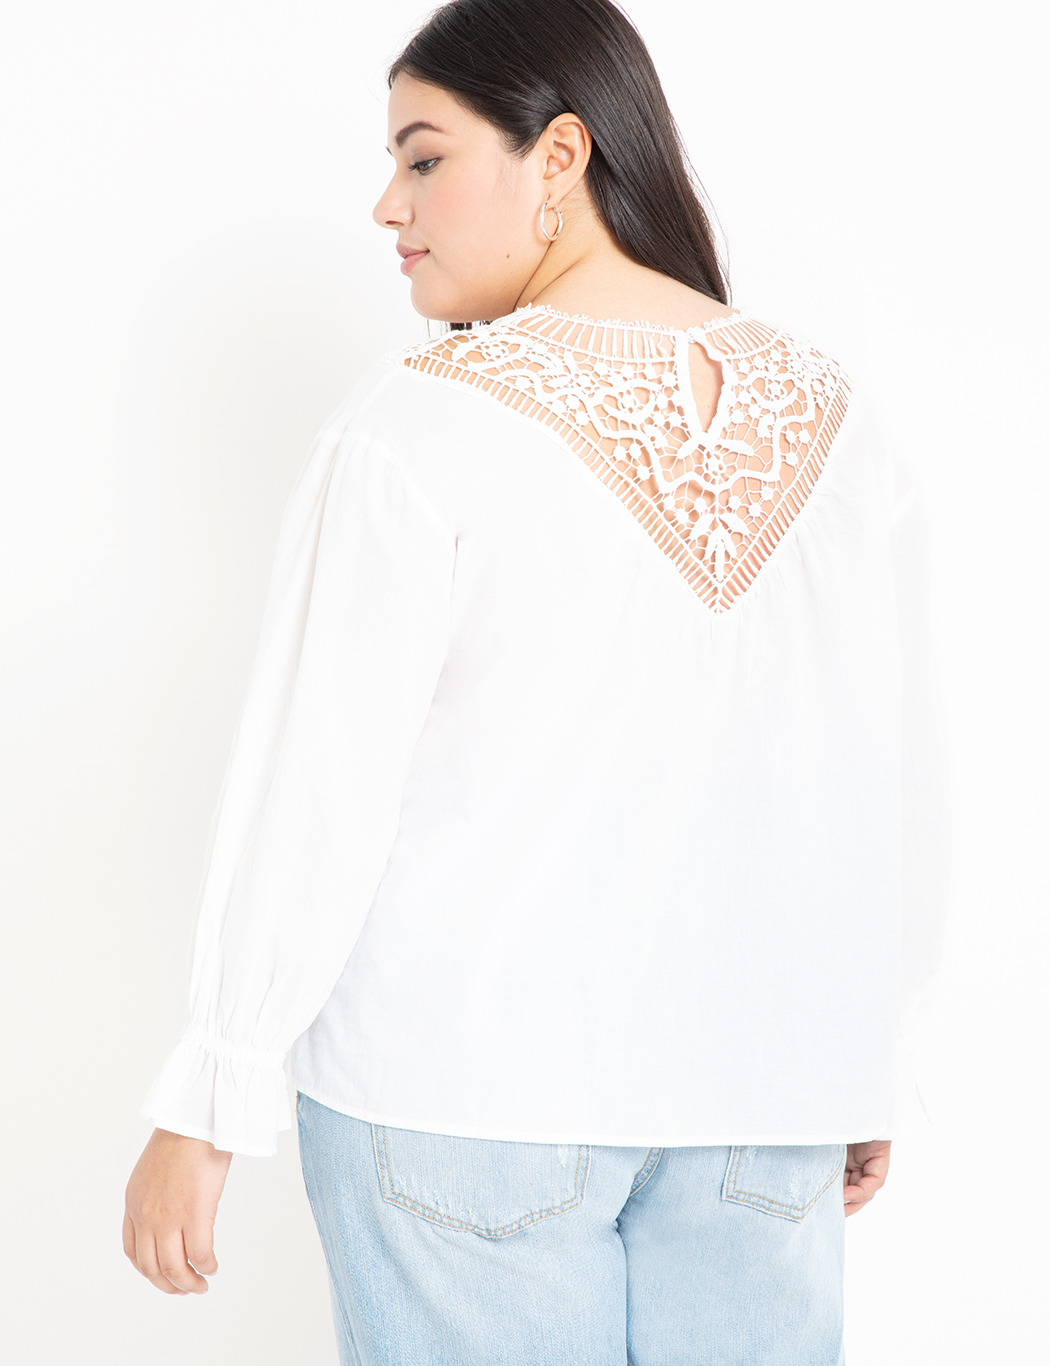 Lace Yoke Blouse with Puff Sleeve